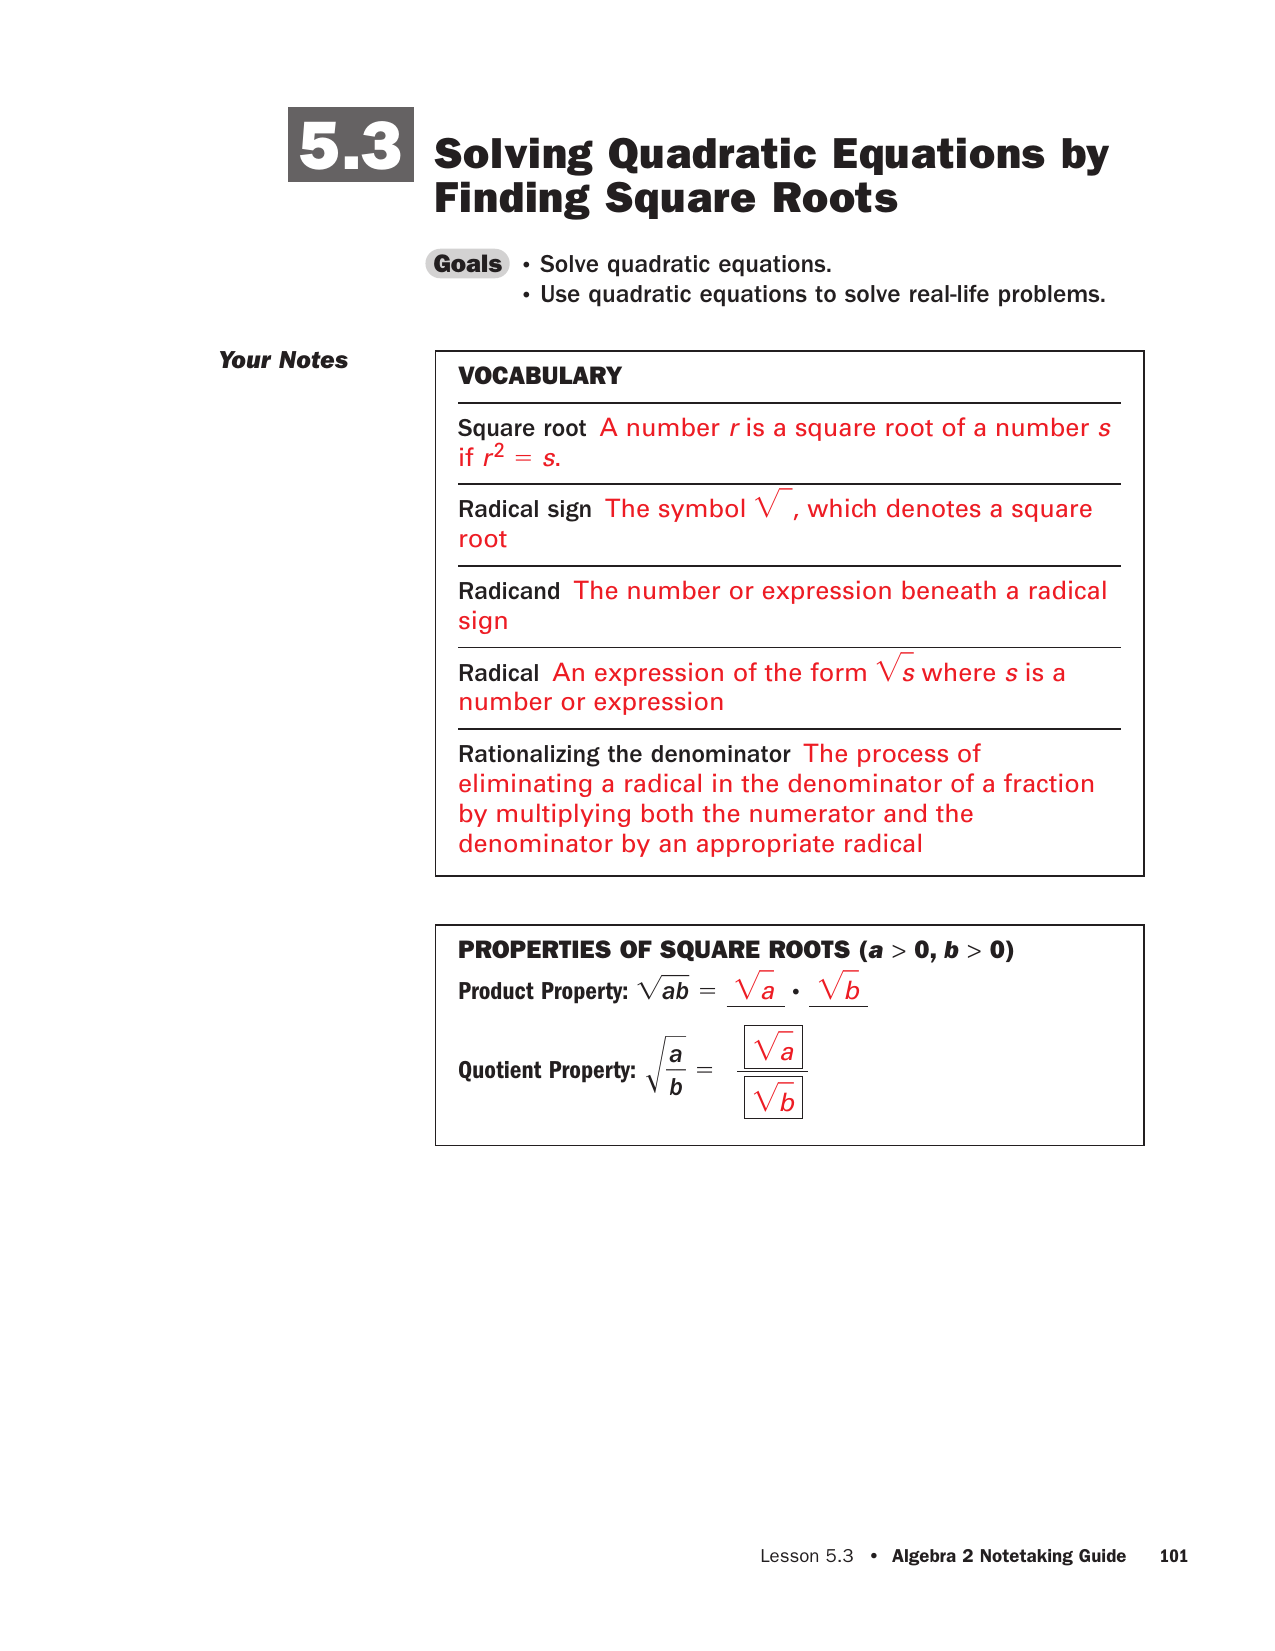 Solving quadratic equations by finding square roots buycottarizona Images